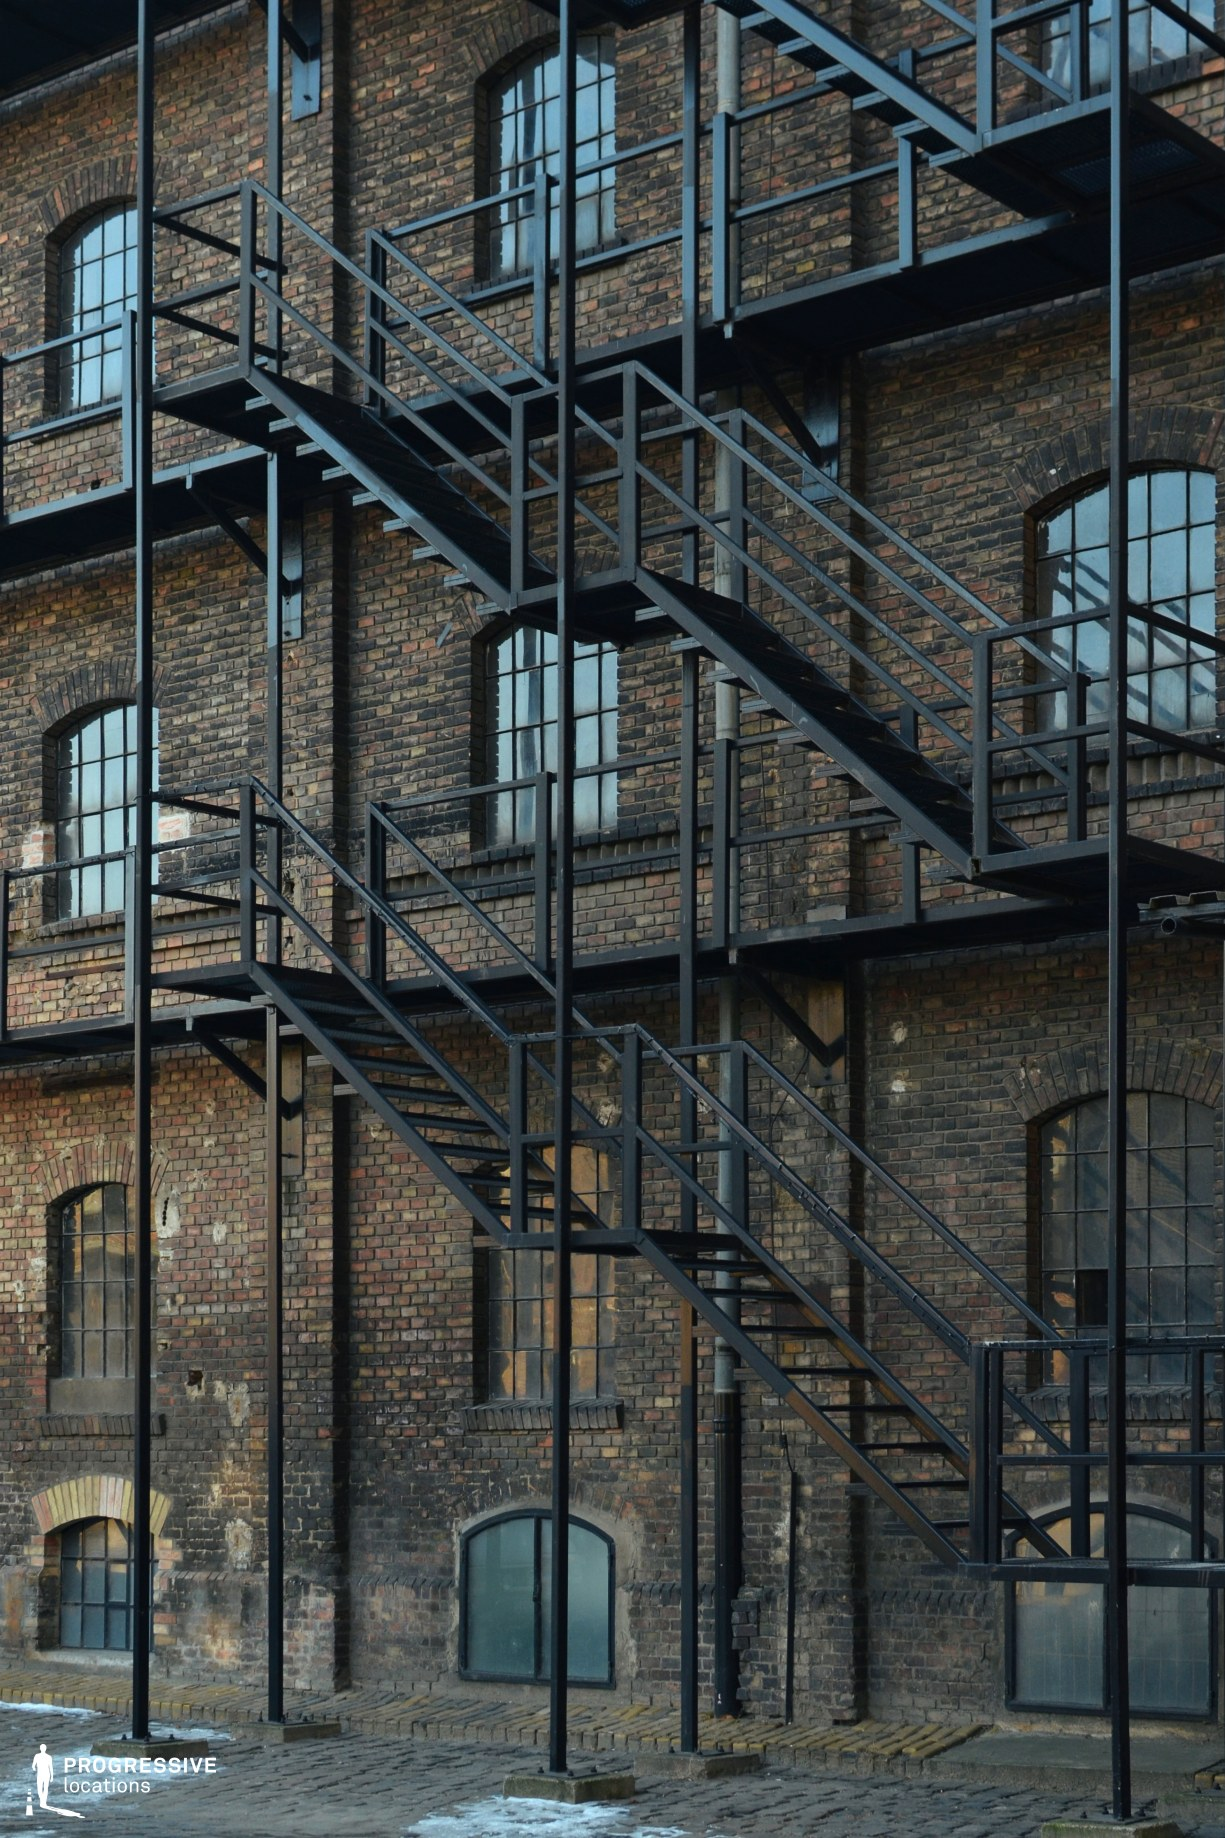 Locations in Budapest: Fire Escape Ladders